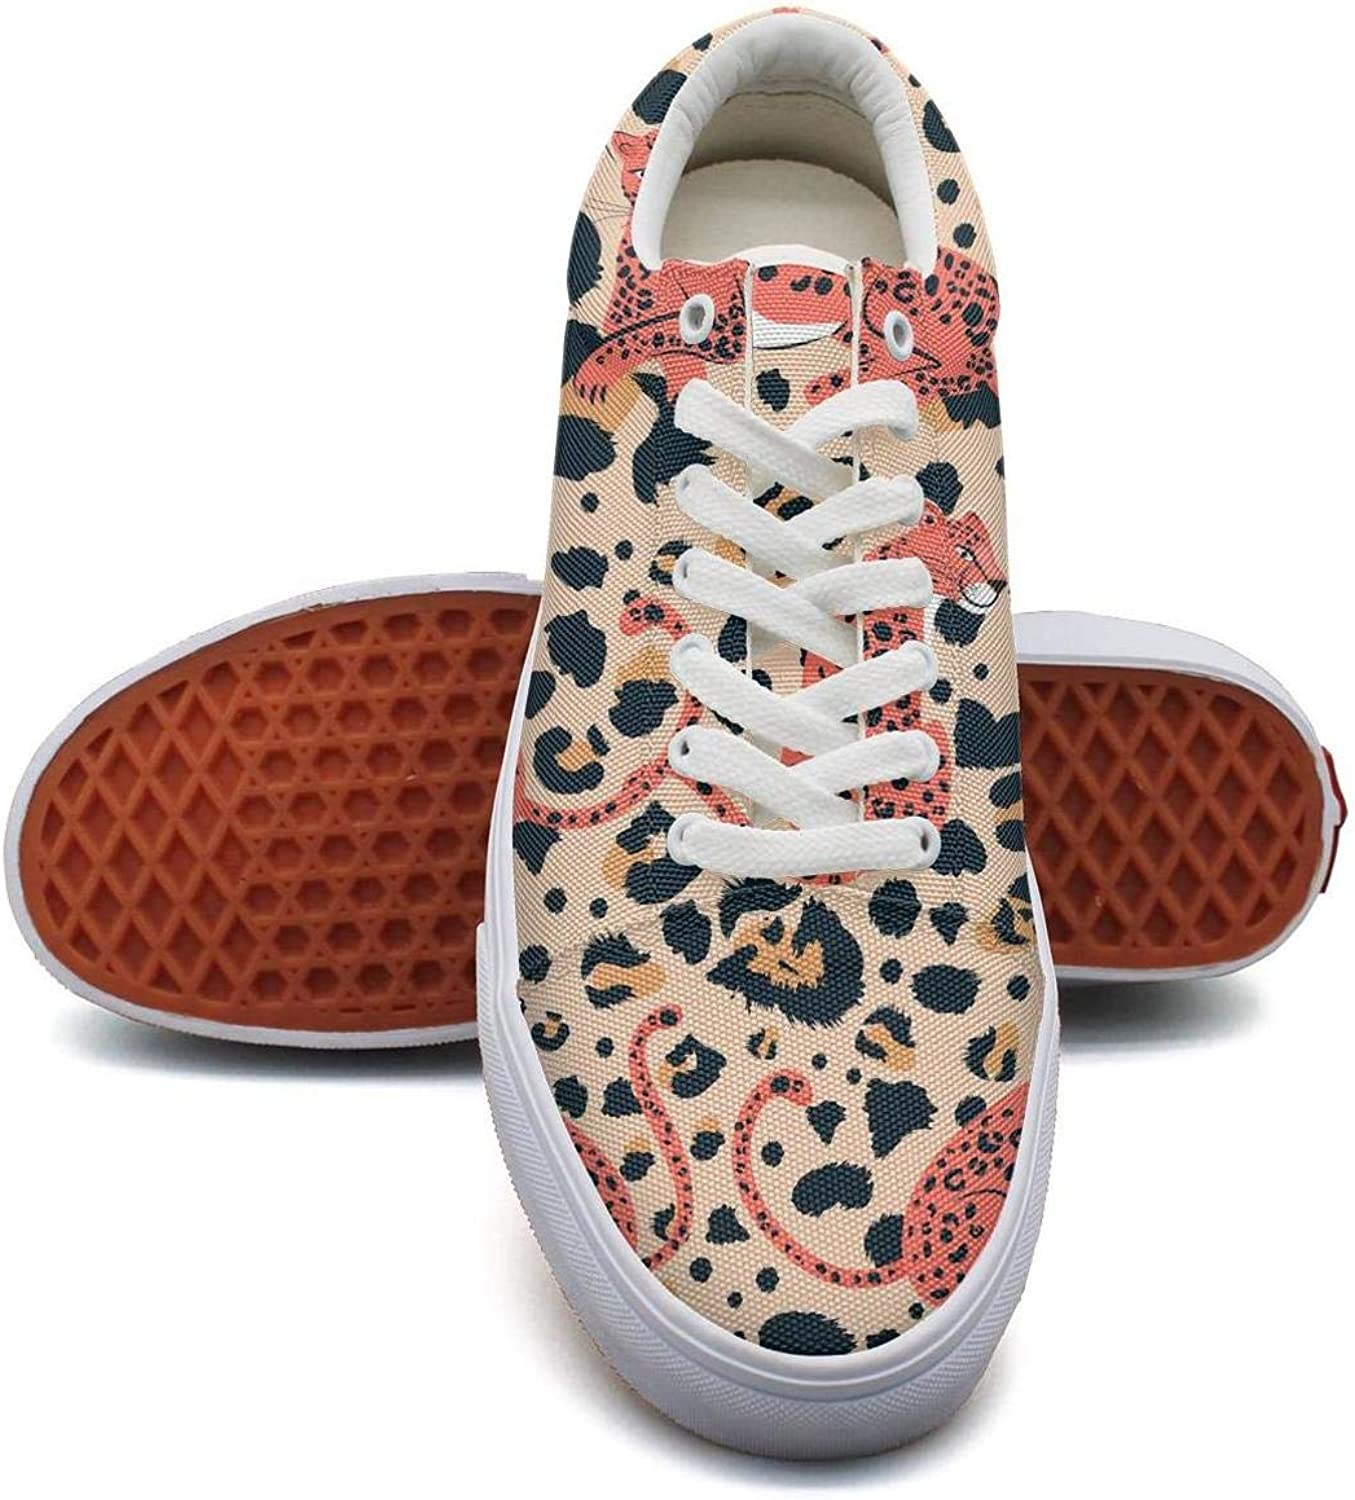 Milr Gile Leopard Design Pattern Print Sneaker Flat Canvas shoes for Womens Stylish